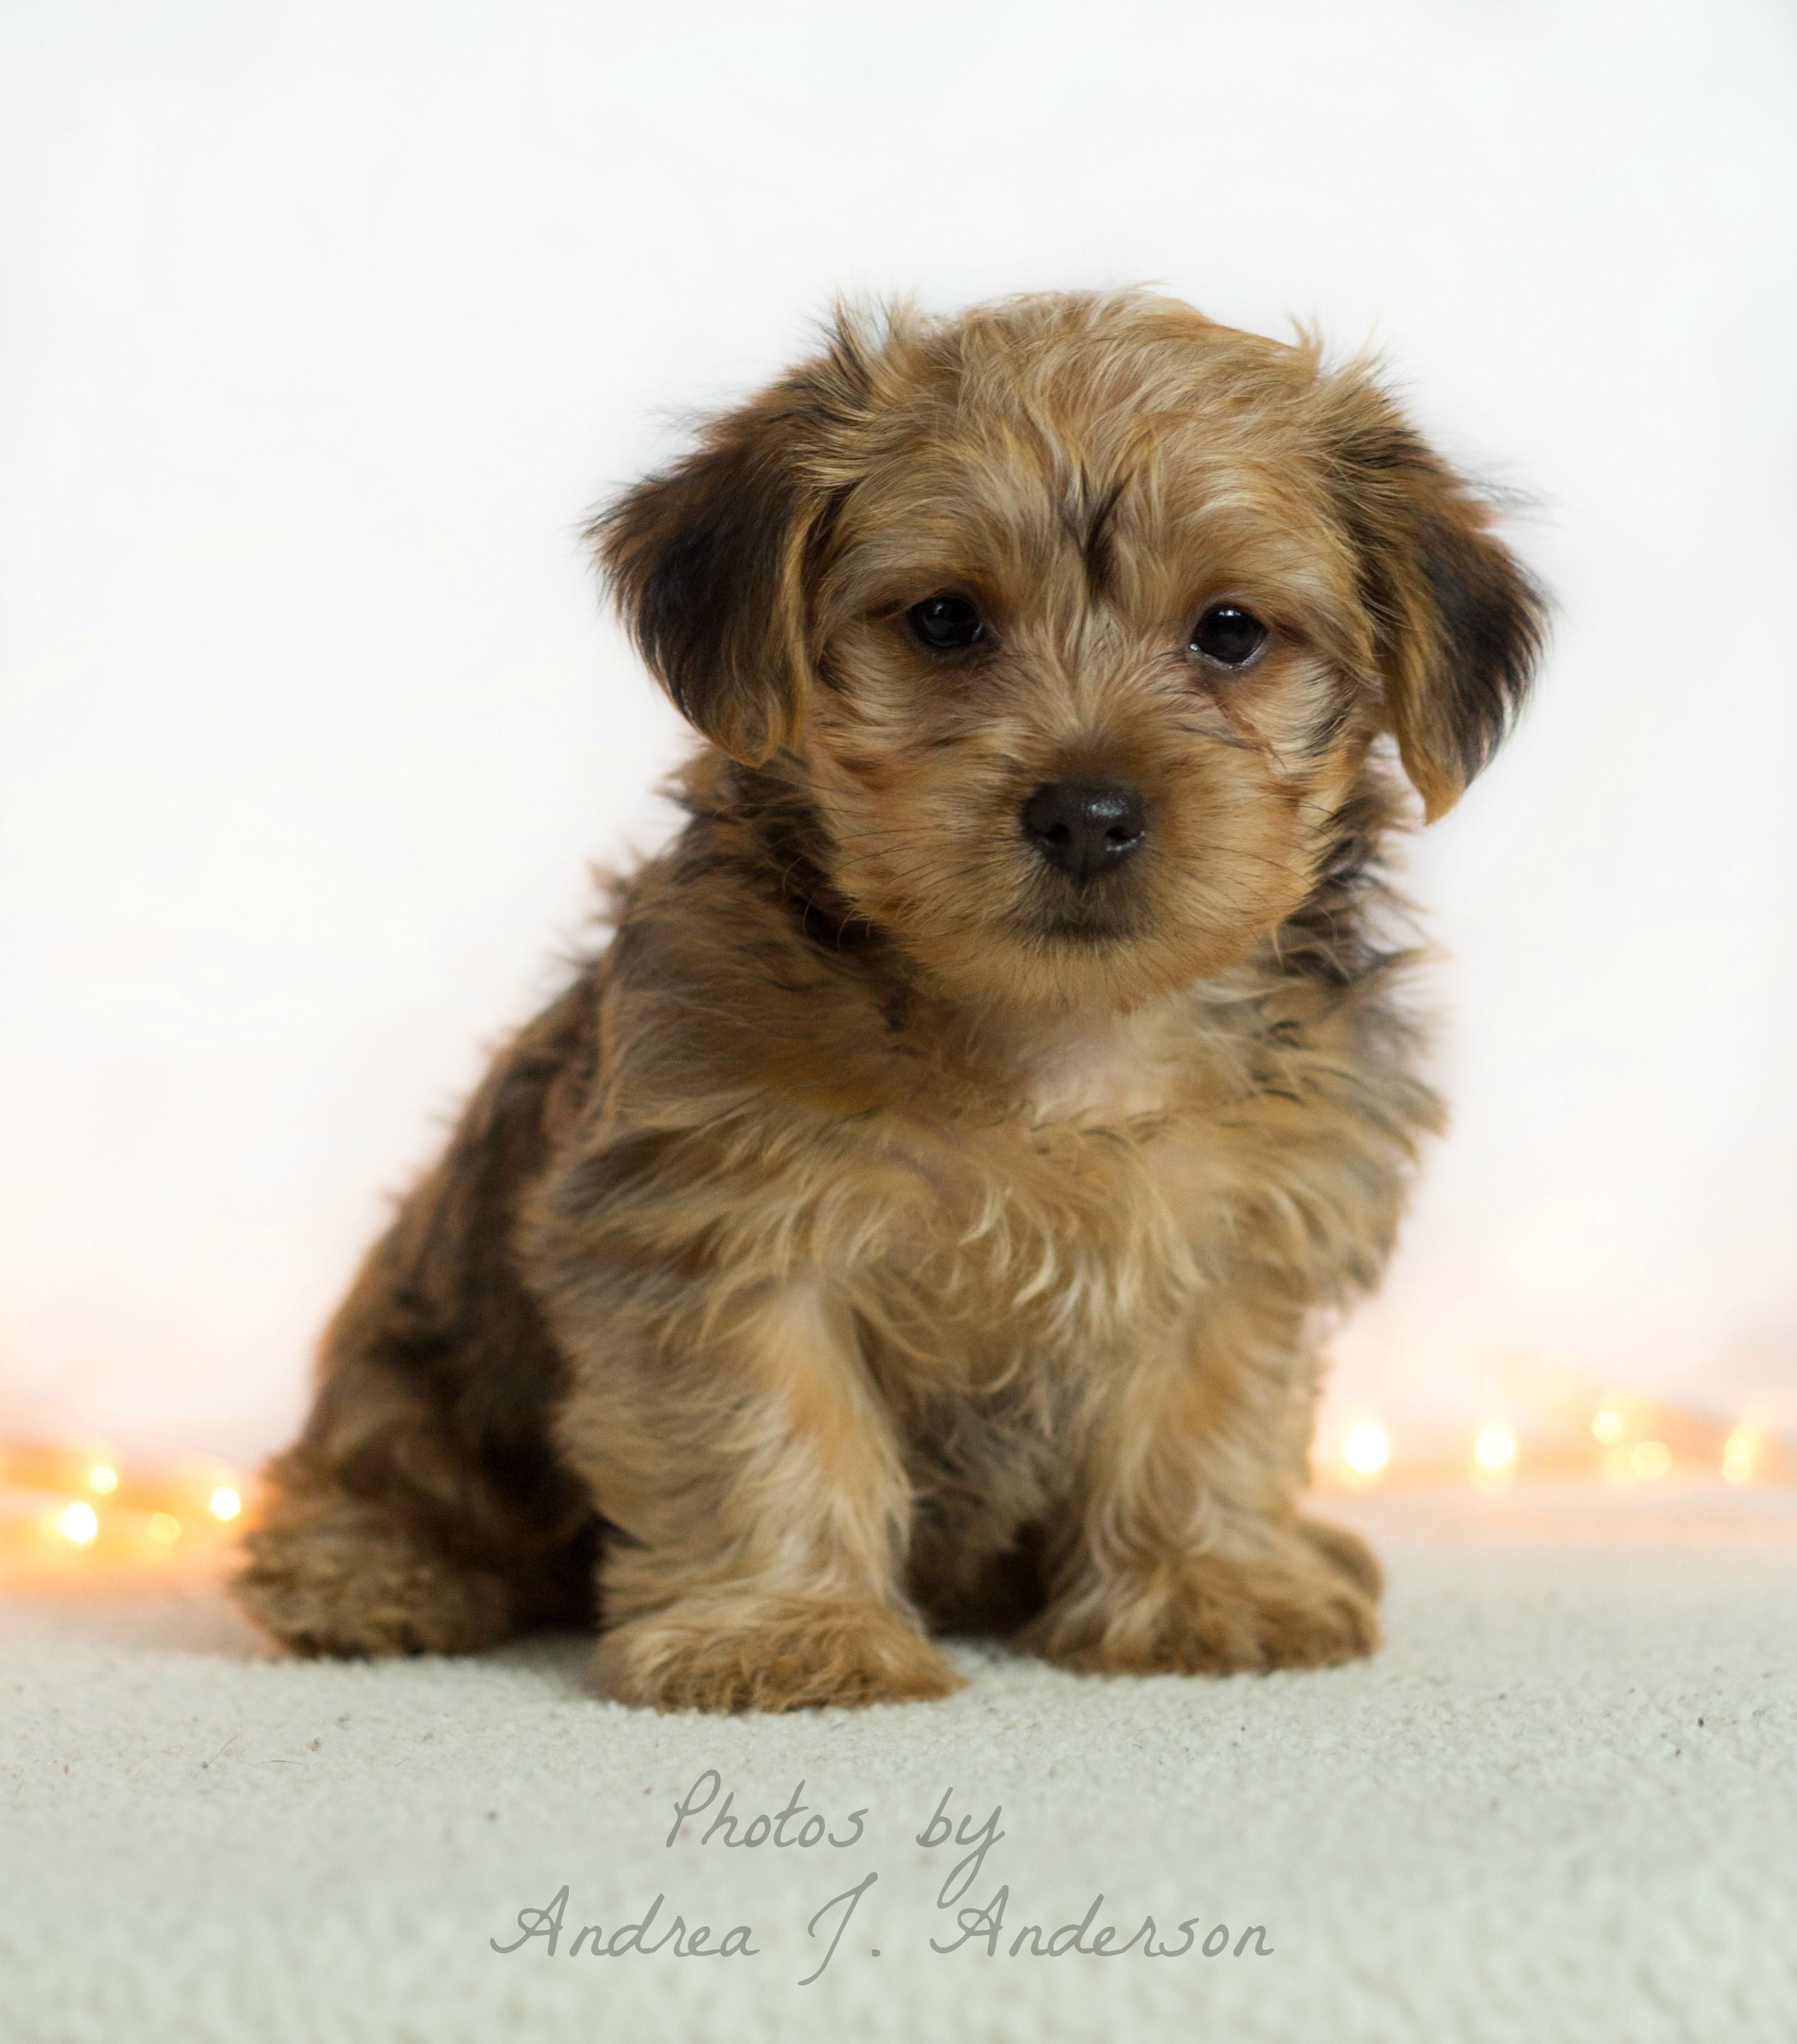 Morkie Puppy Www Facebook Com Andreaphotos Morkie Puppies Puppies Pets